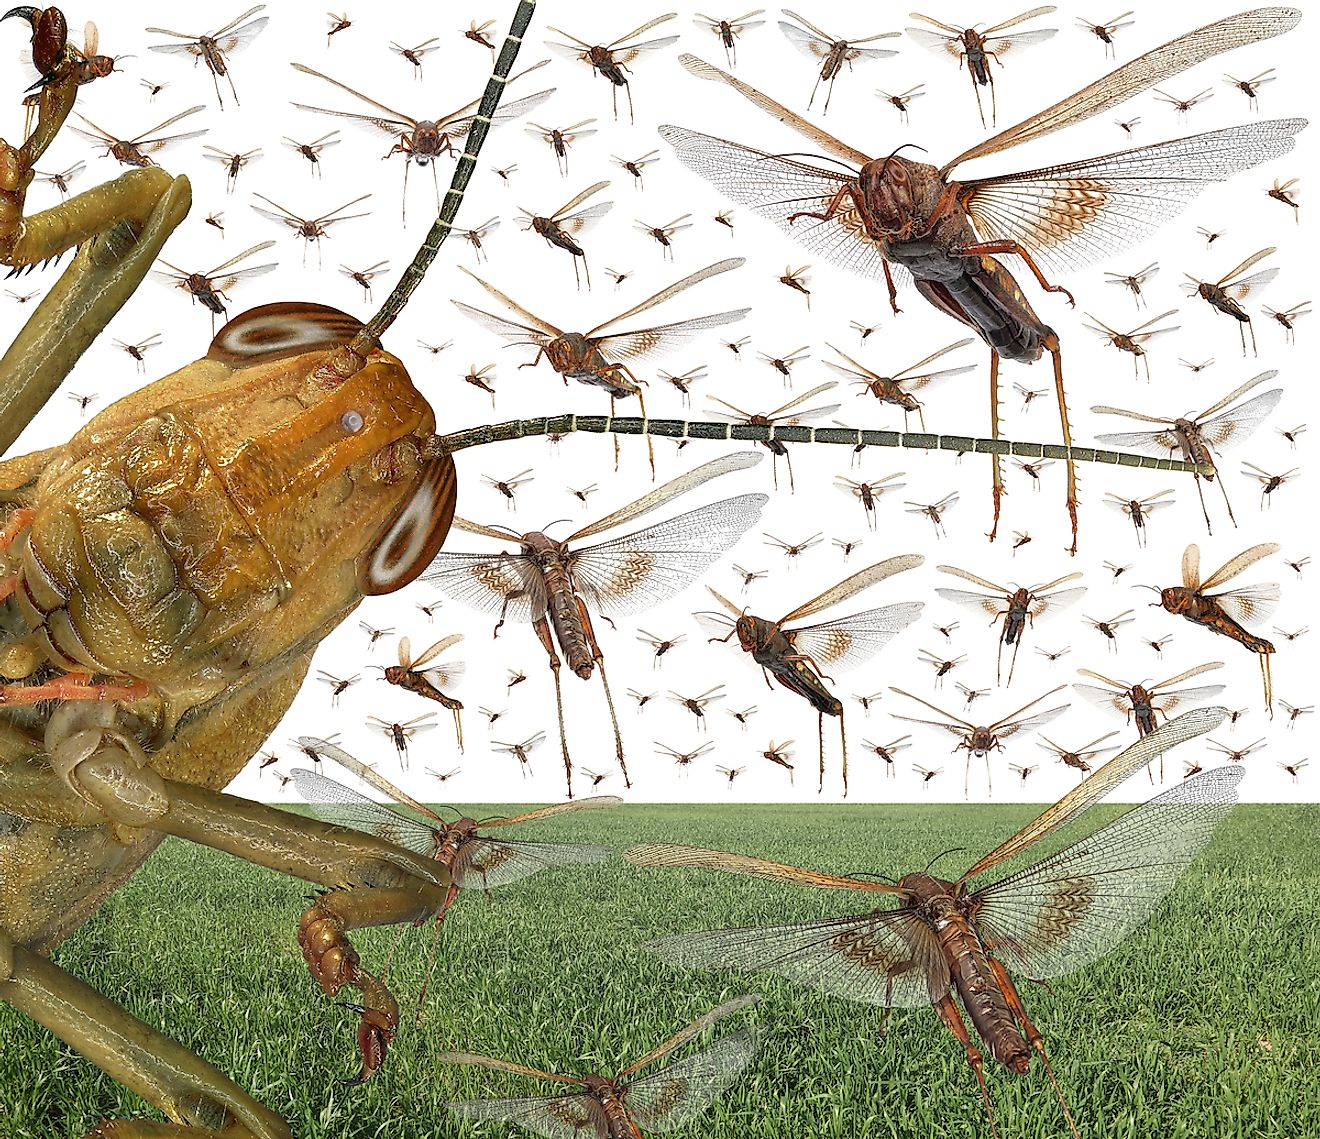 Migratory locust swarm above the cereal green field. Image credit: Protasov AN/Shutterstock.com